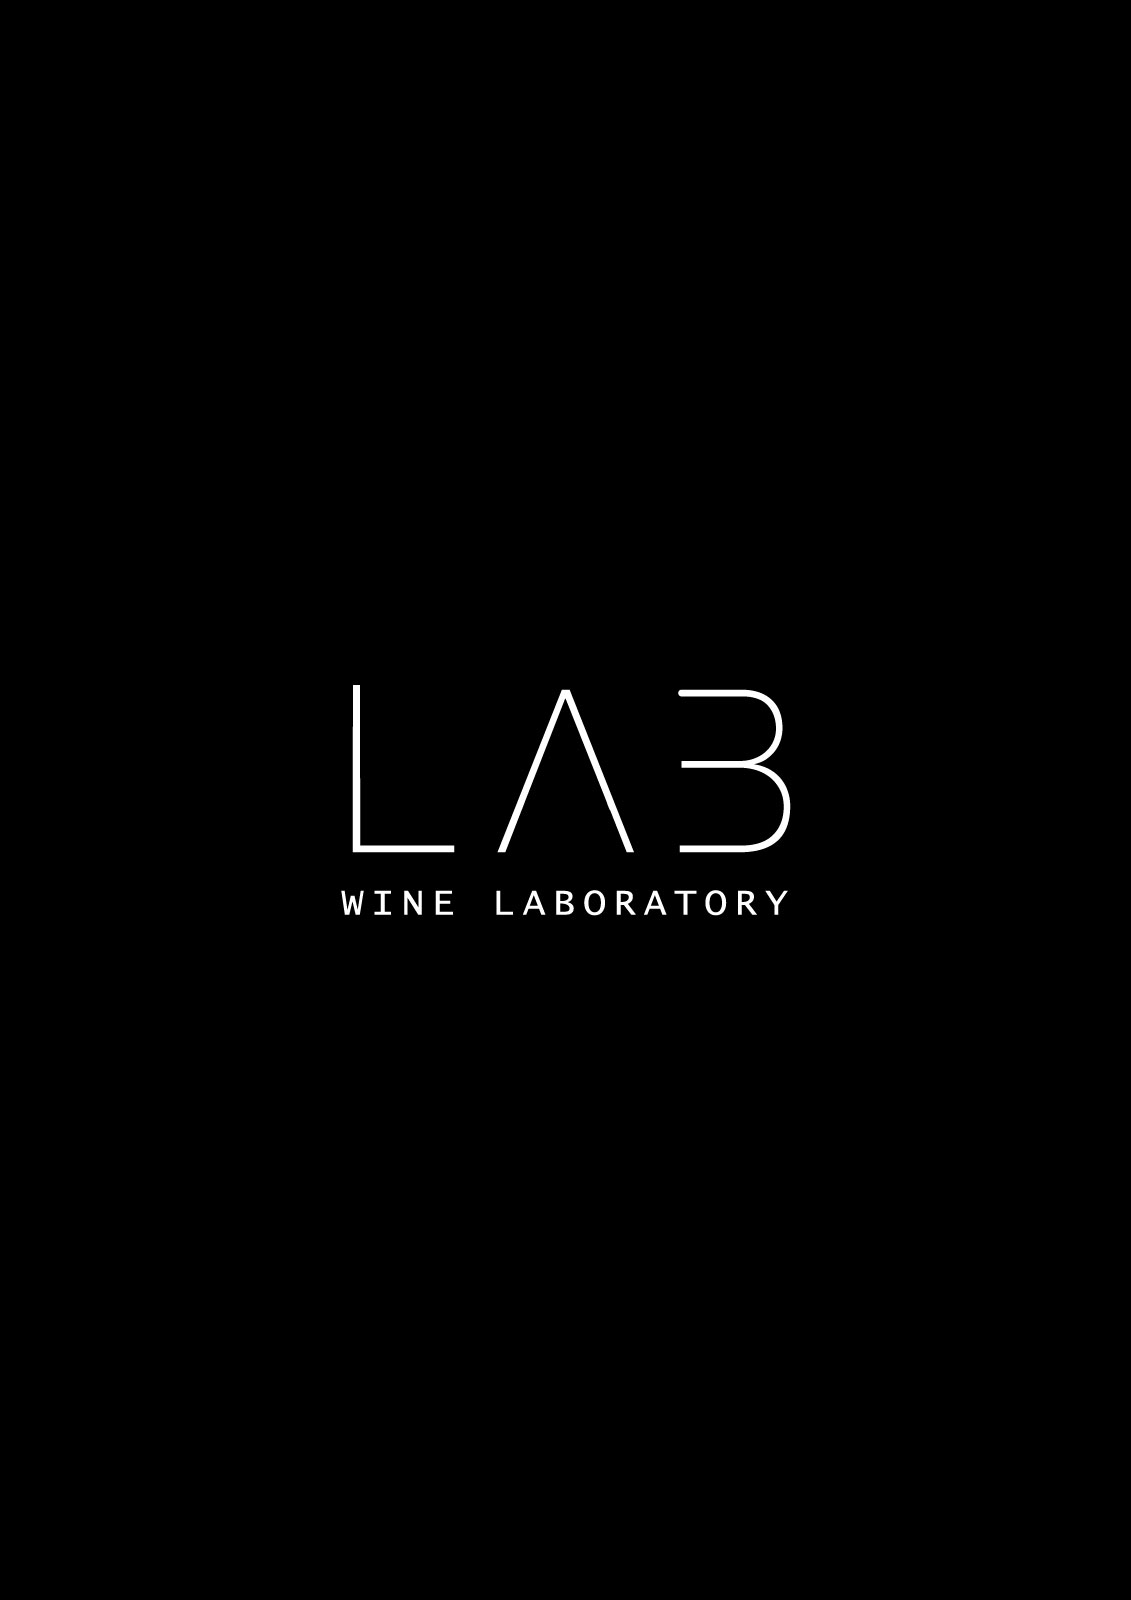 LAB wine laboratory